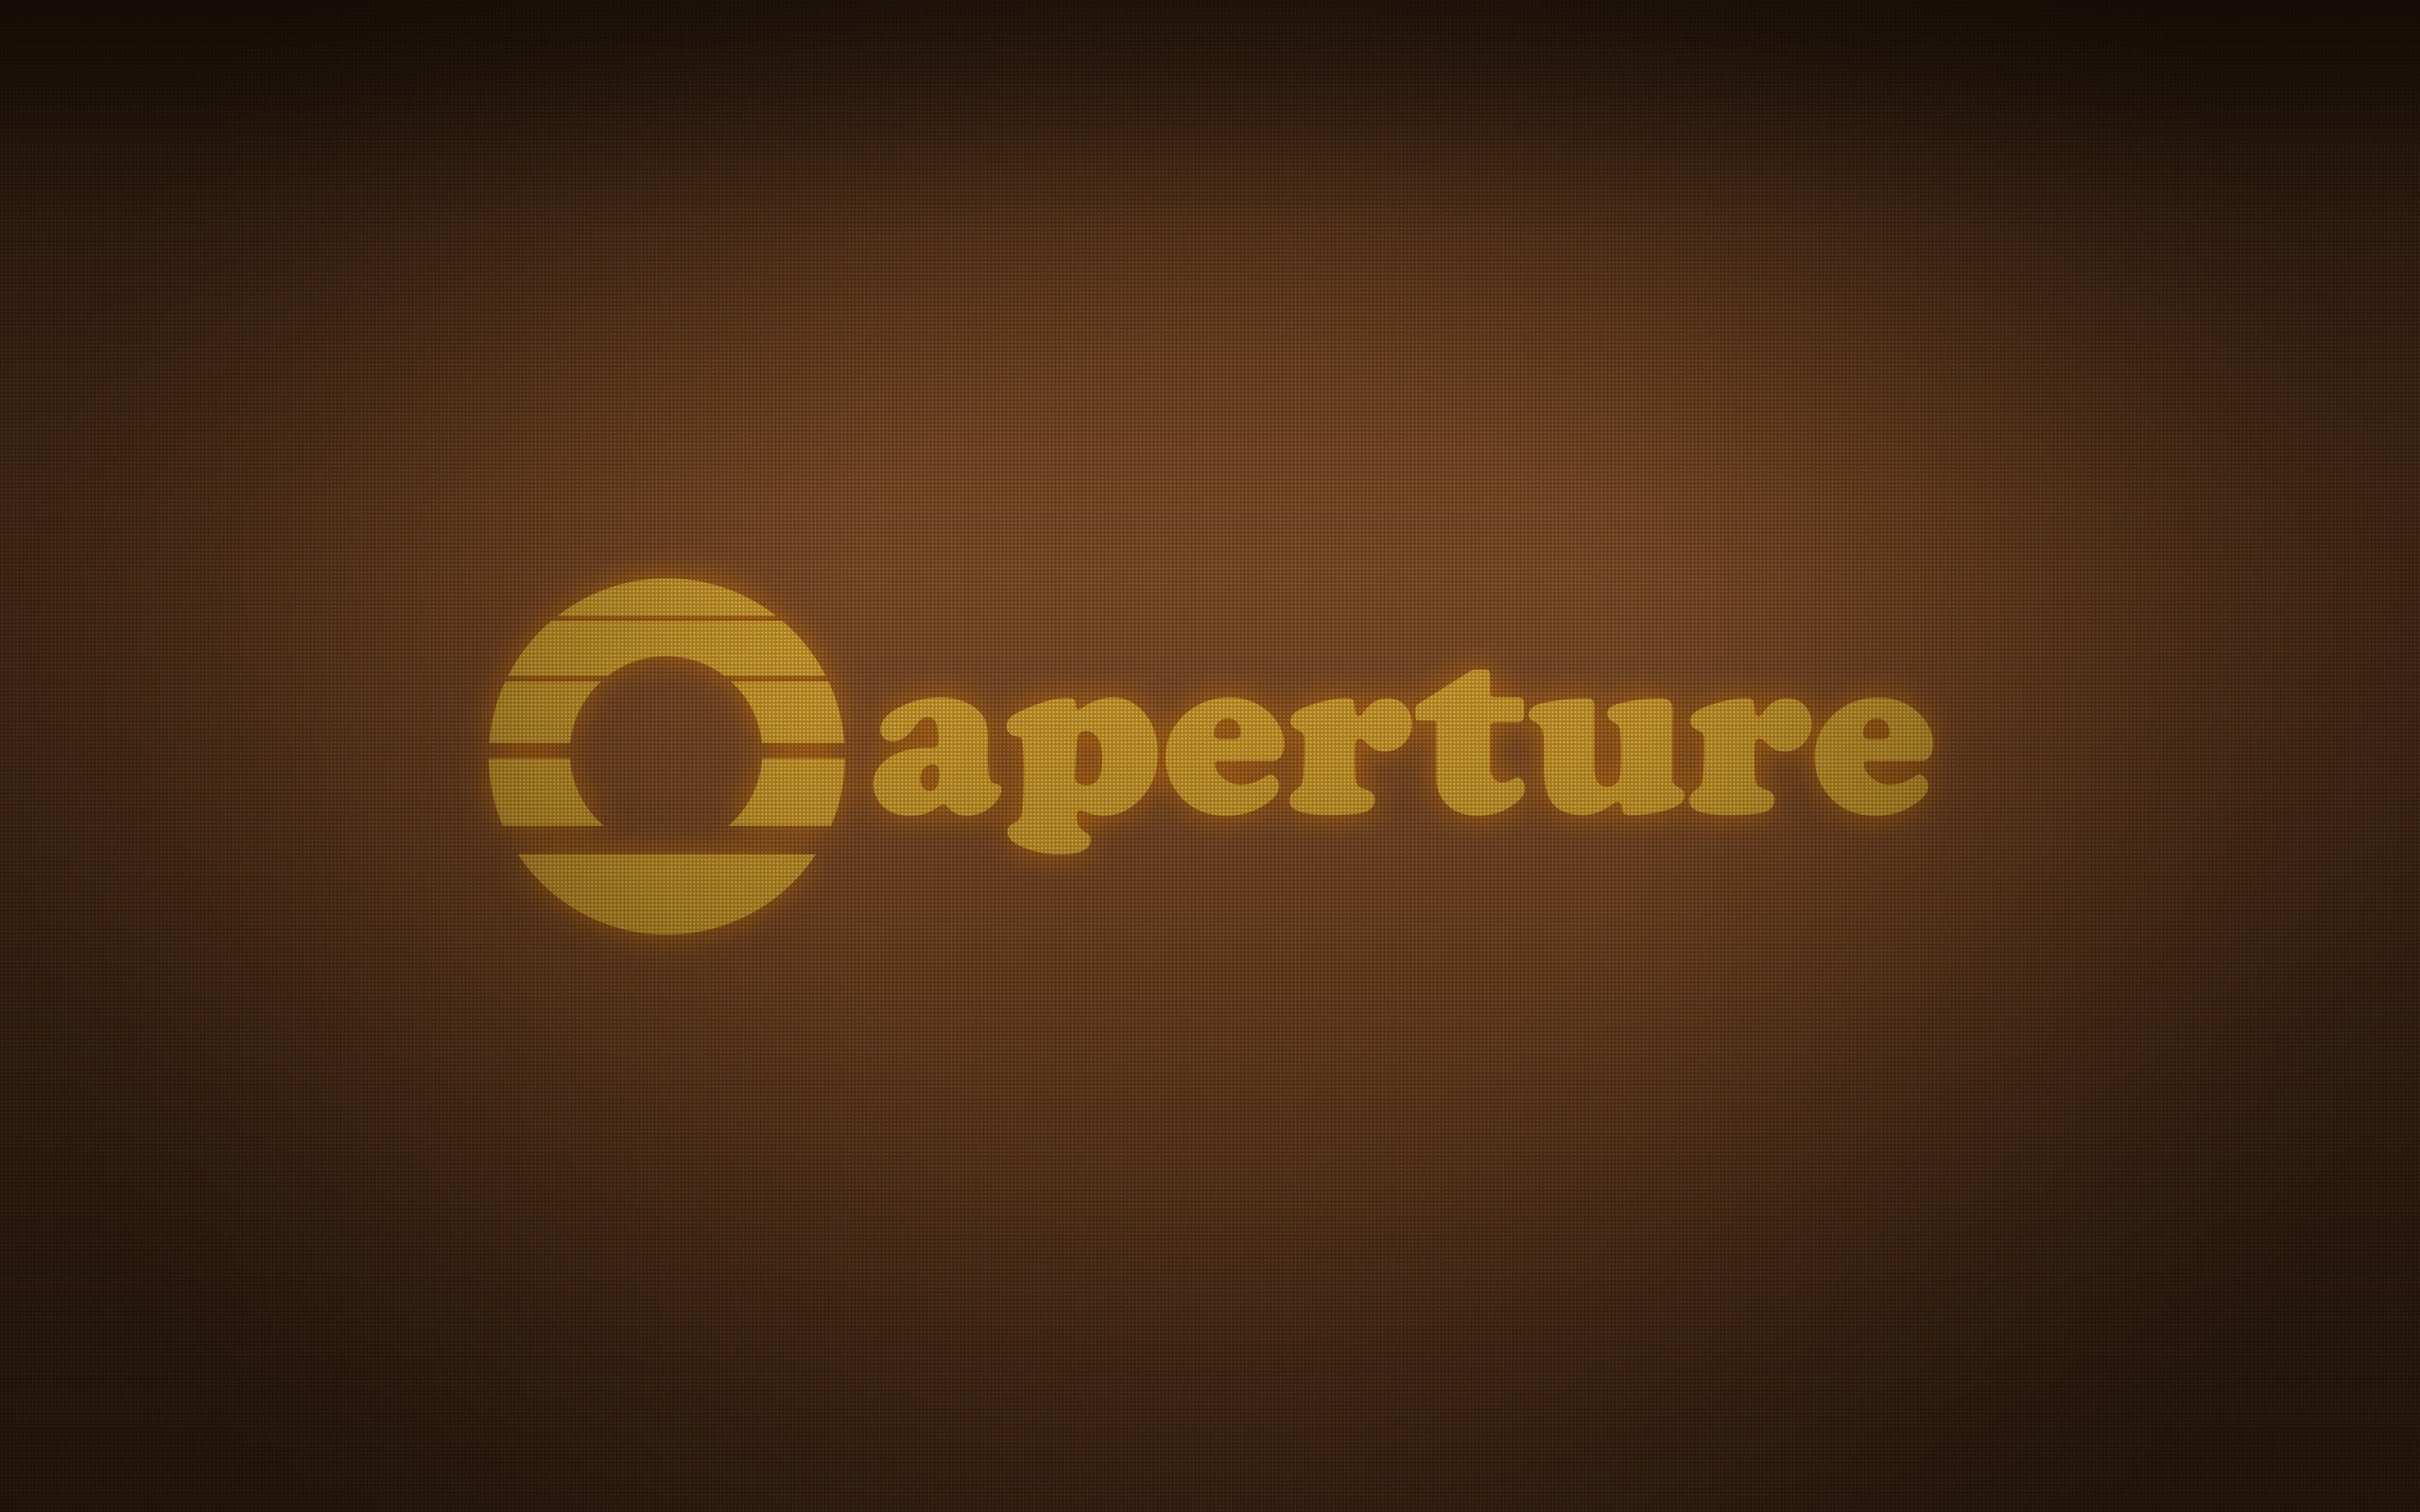 Aperture Science Wallpaper HD 78 Images